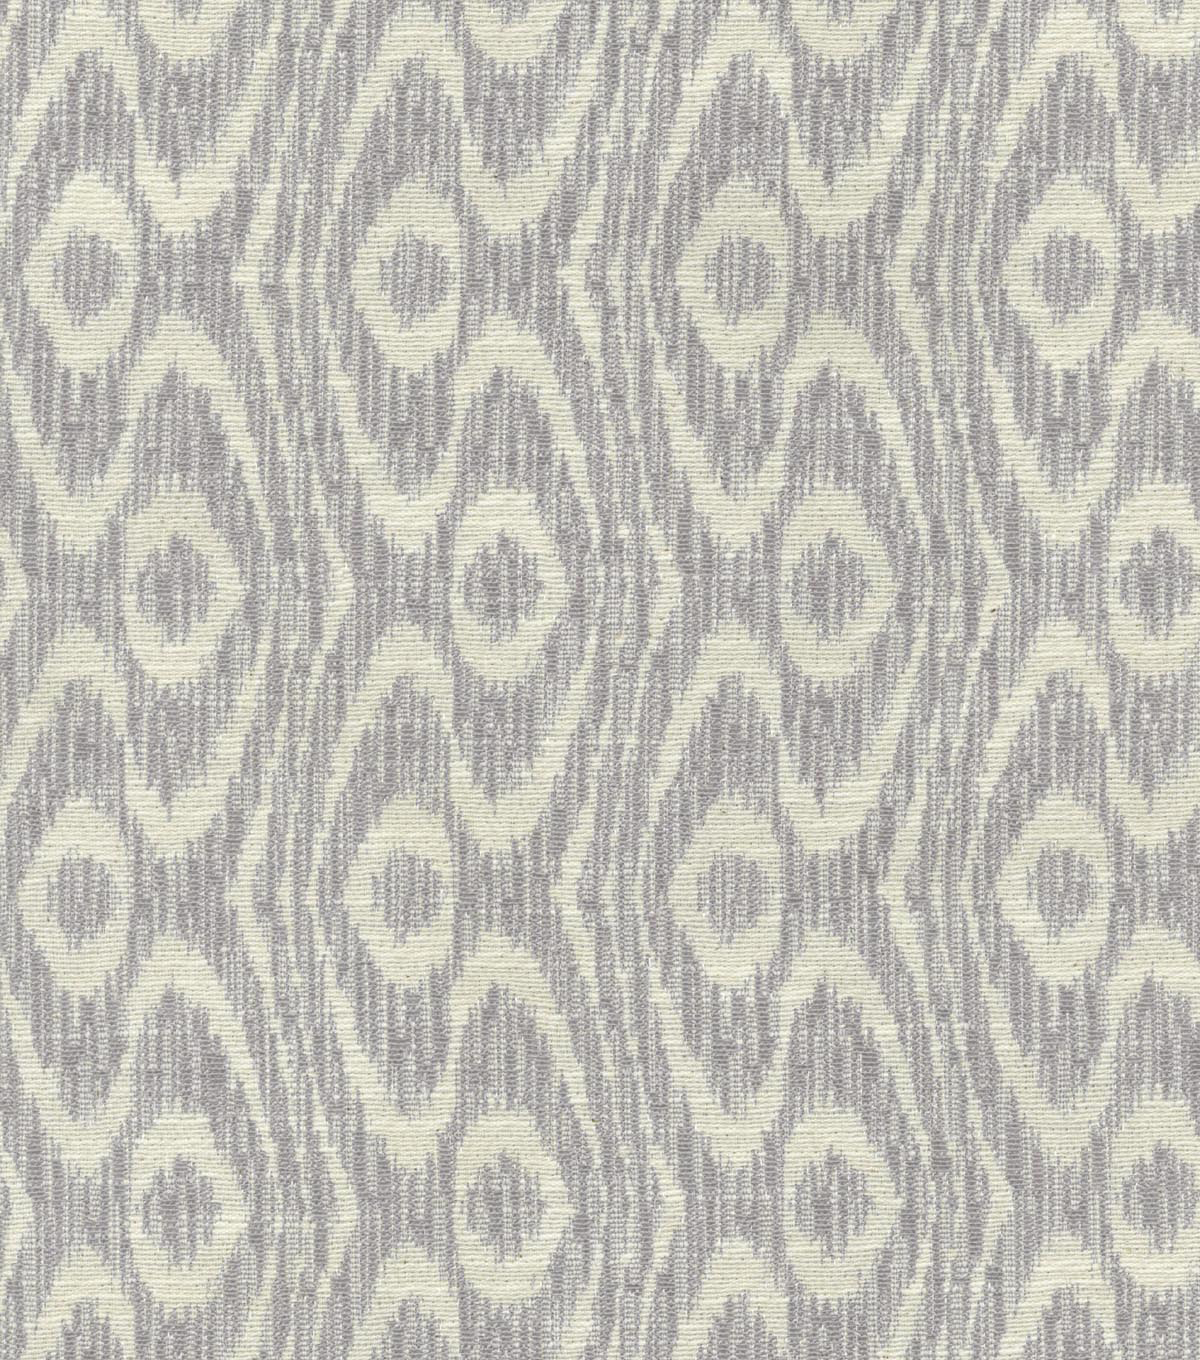 P/K Lifestyles Multi-Purpose Decor Fabric 57\u0022-Acres Beyond/Silver Cloud